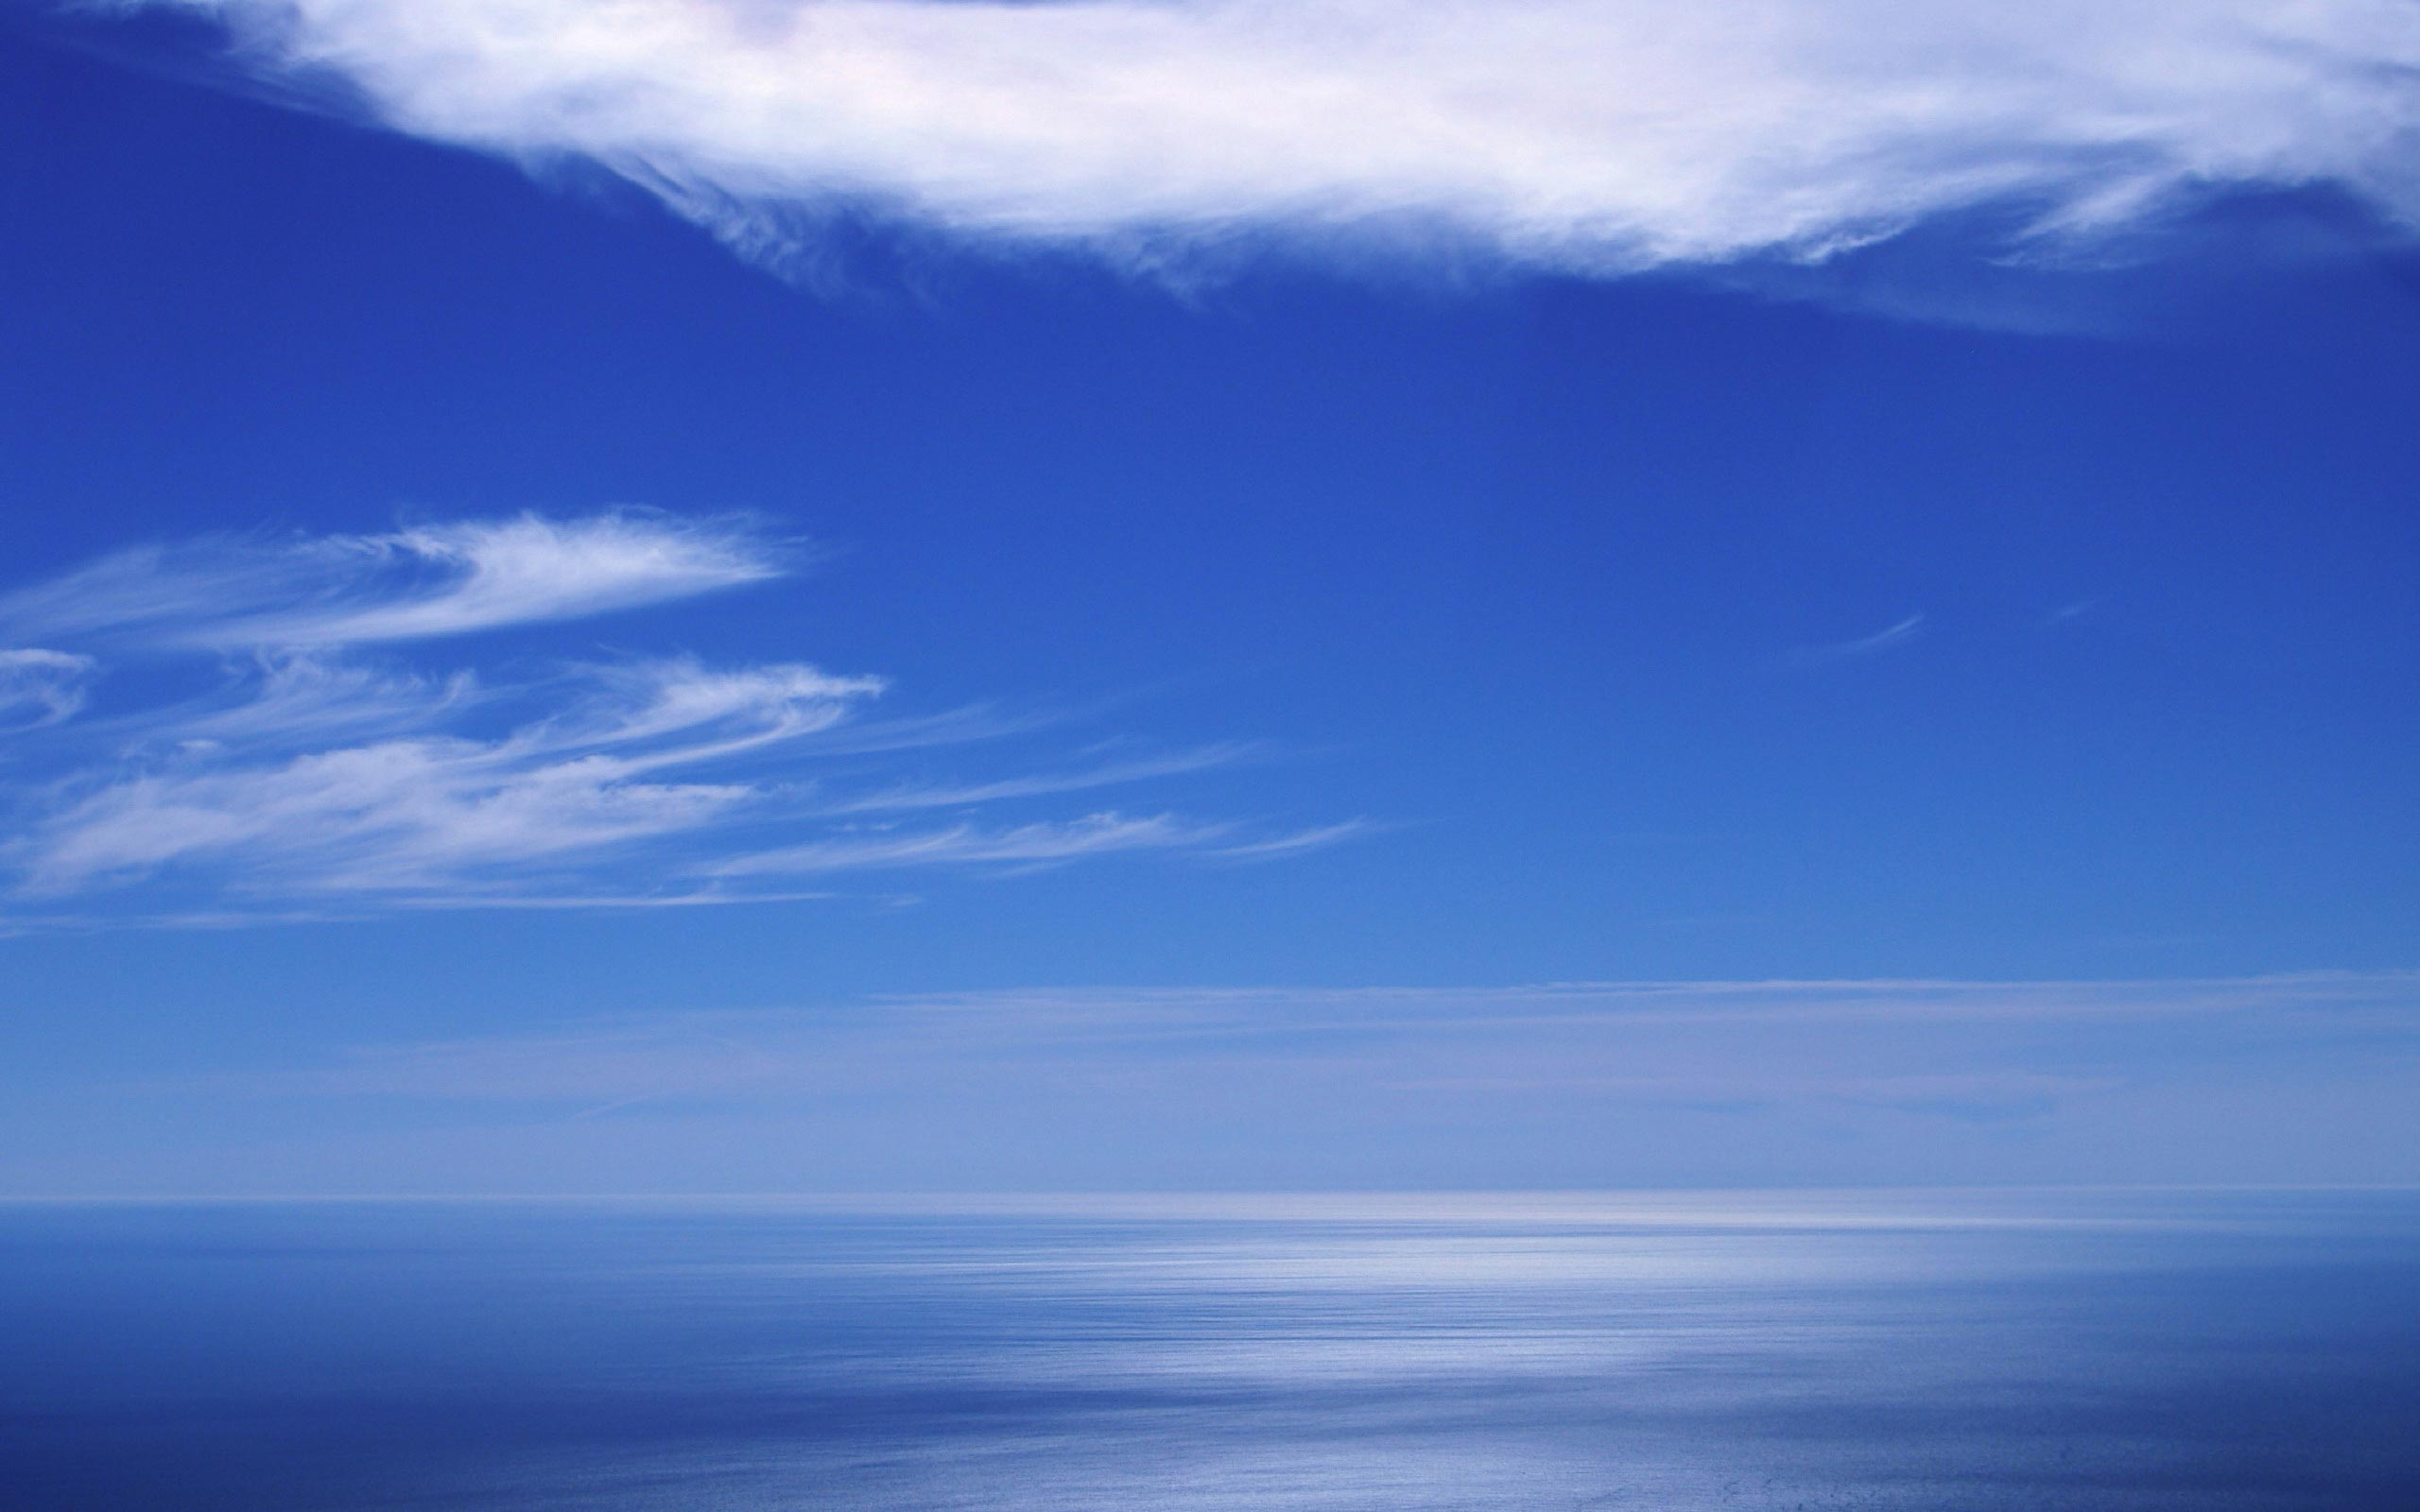 Blue Sky Wallpapers HD Wallpapers 2560x1600